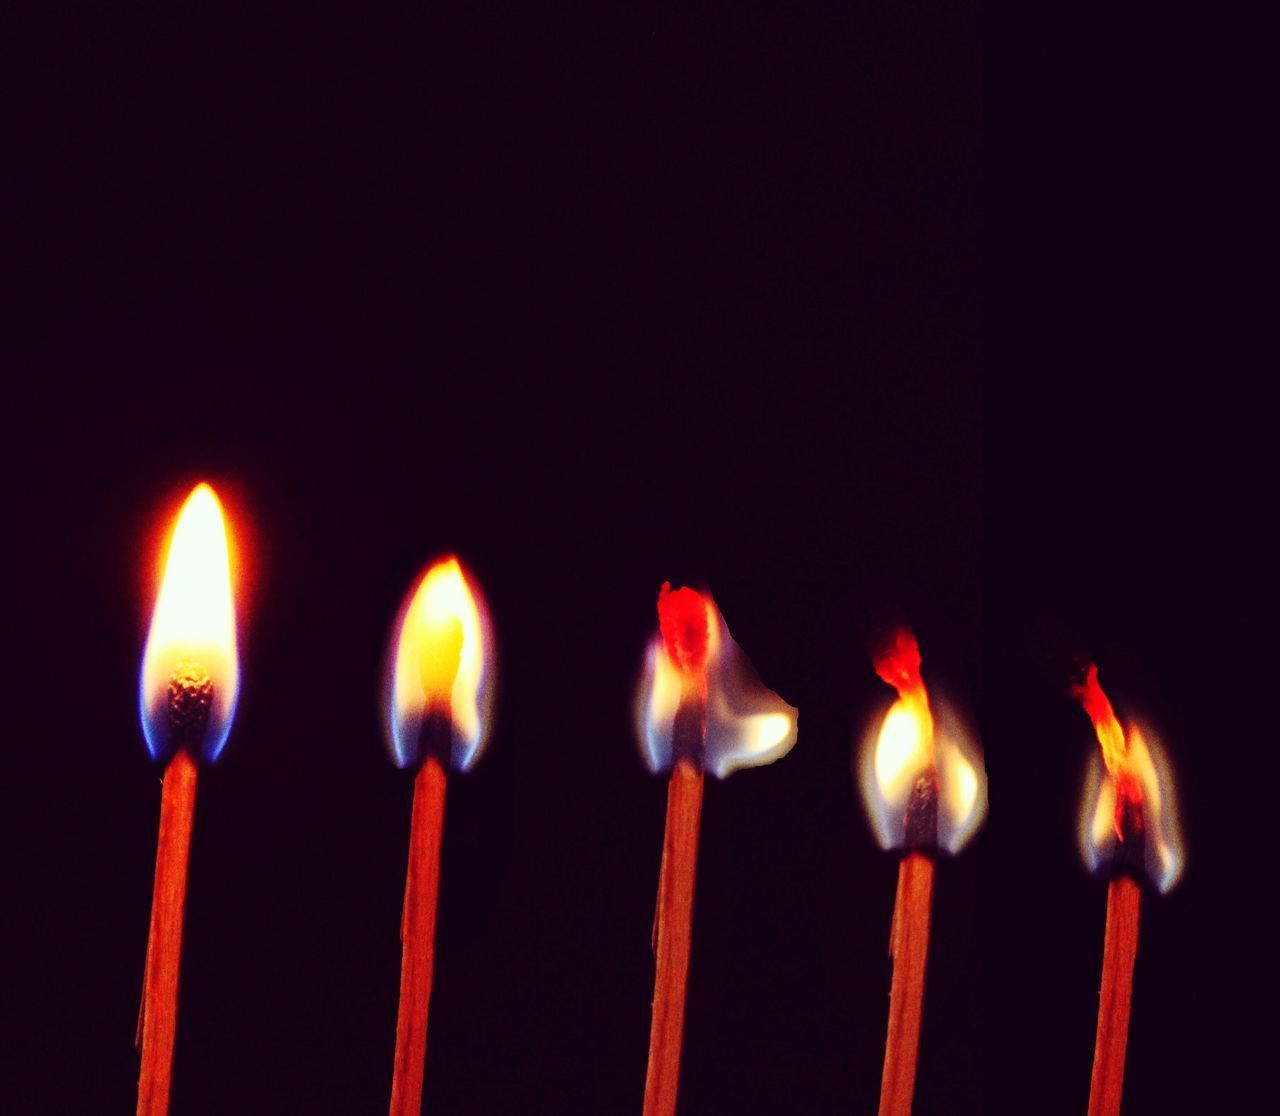 flame, fire, burning, heat - temperature, fire - natural phenomenon, indoors, close-up, candle, side by side, copy space, no people, studio shot, glowing, black background, matchstick, red, nature, in a row, food and drink, sweet food, order, temptation, birthday candles